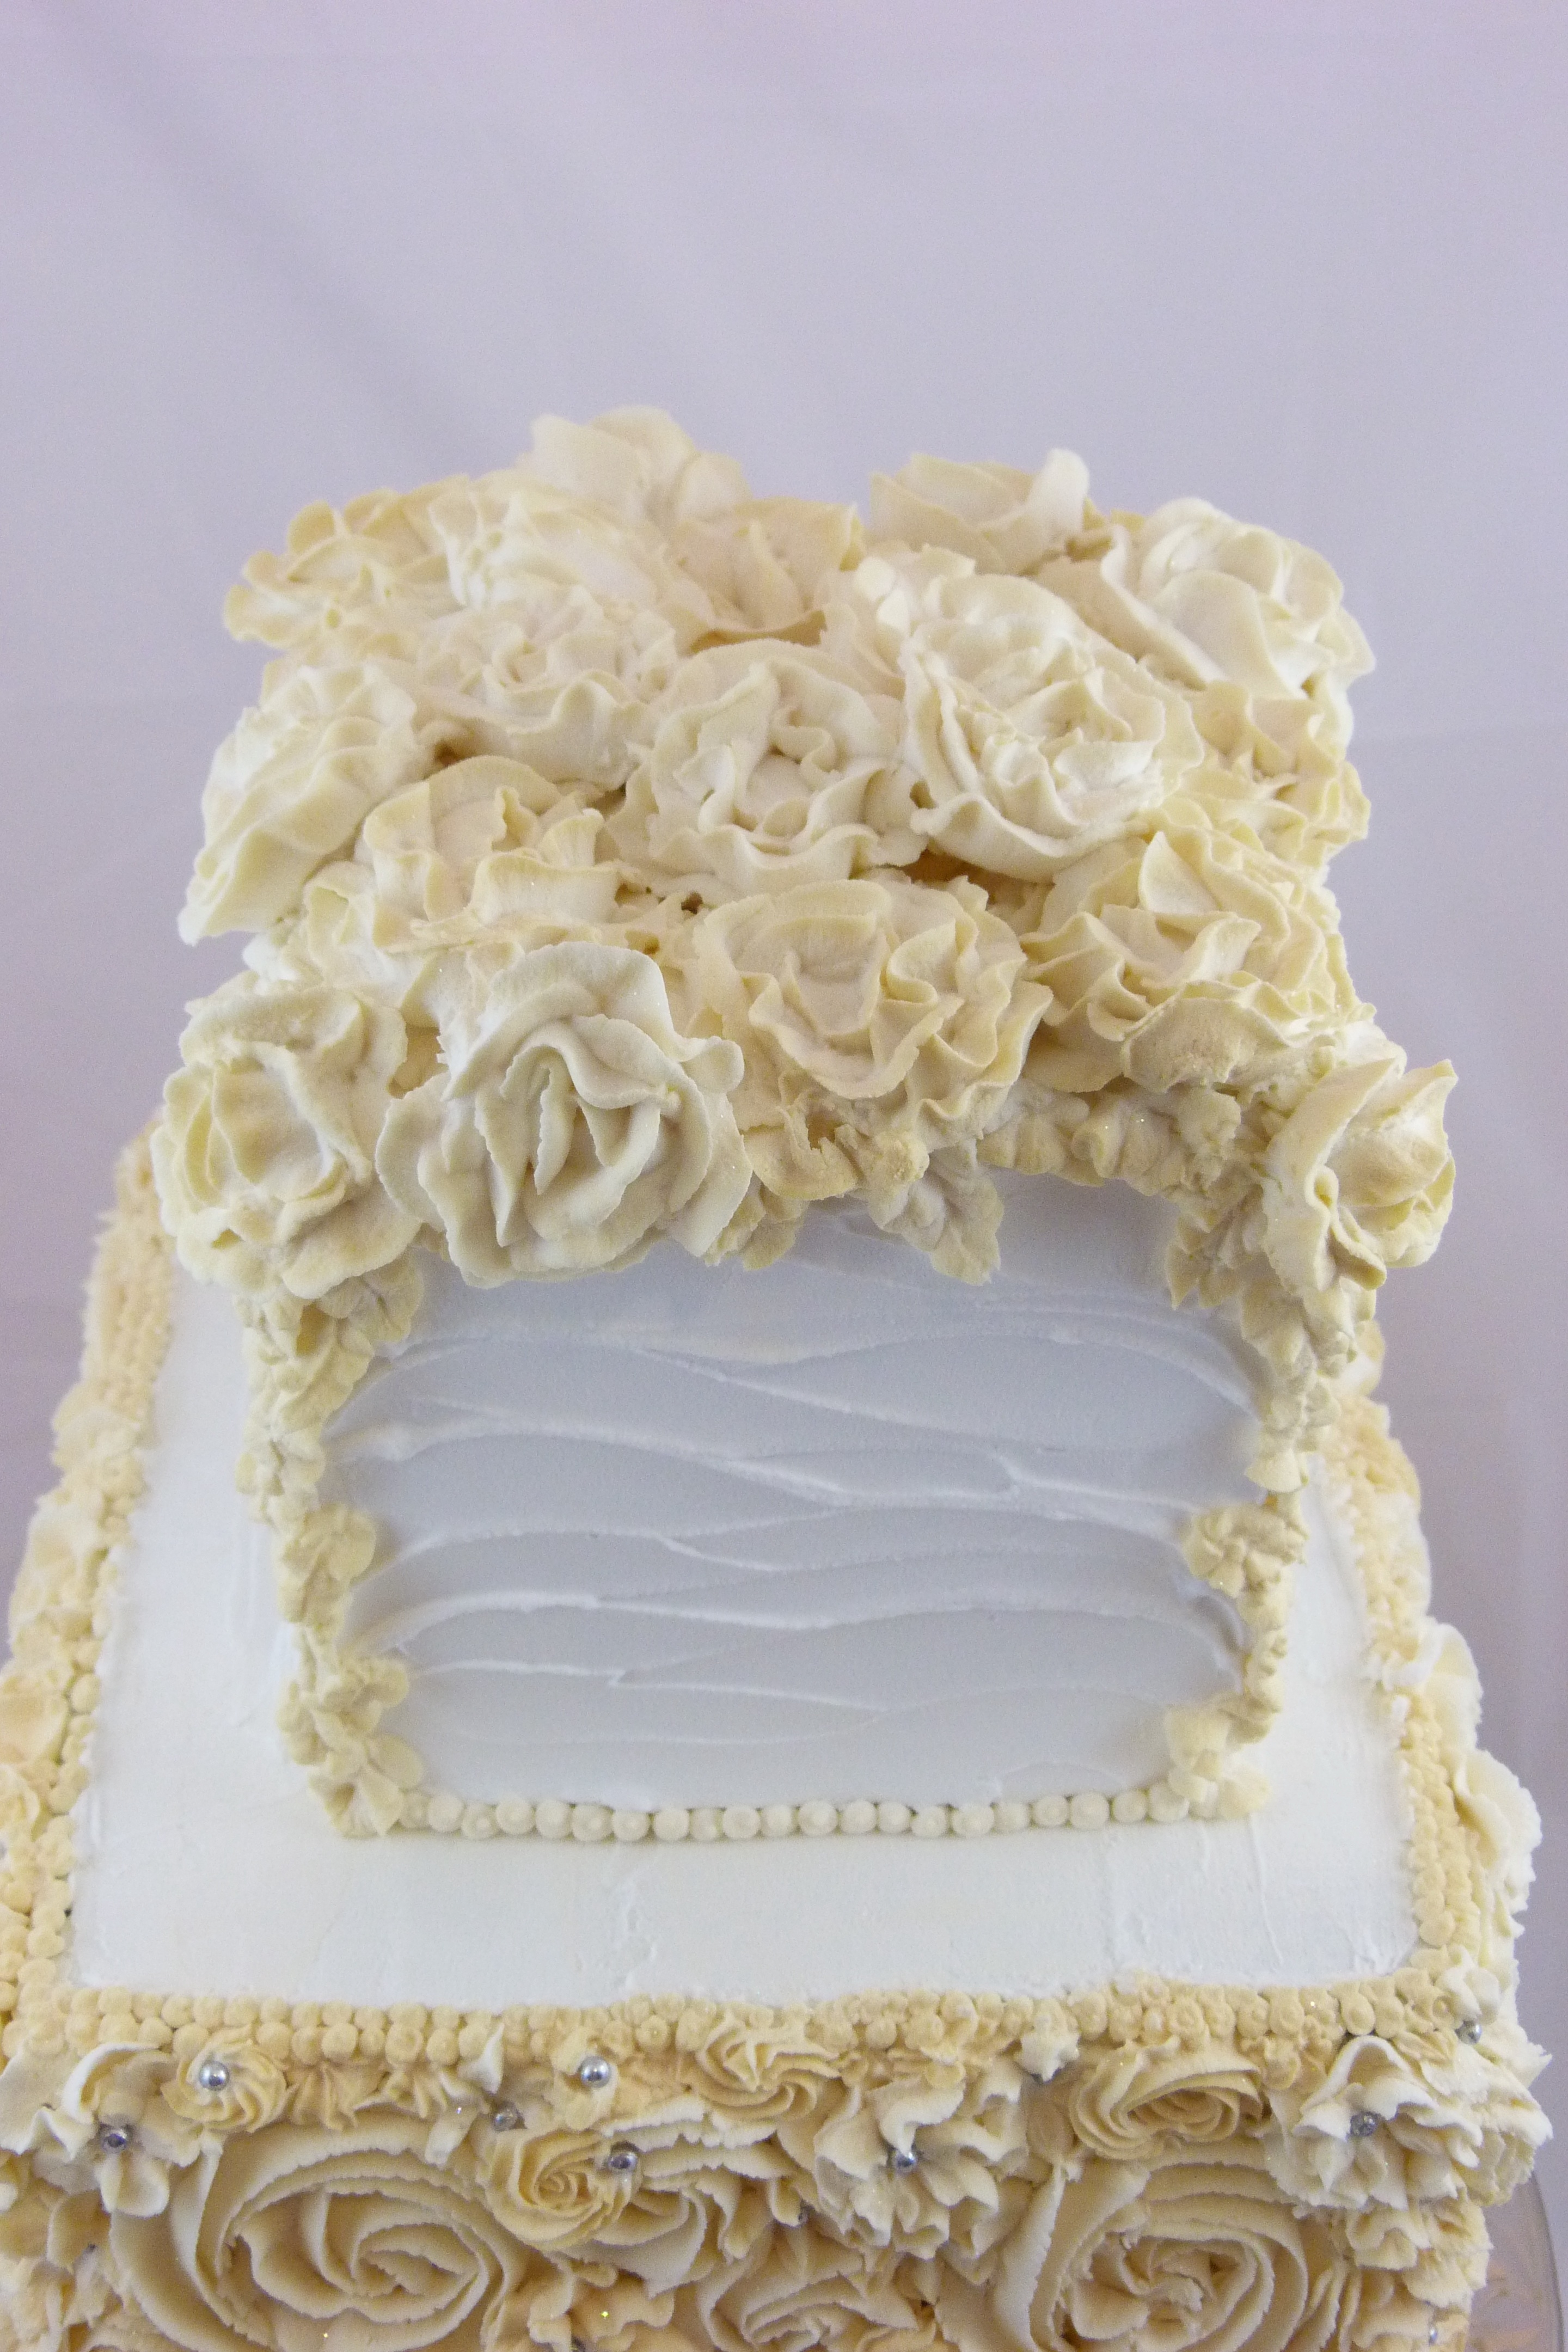 Square Buttercream Piped Cake In Ivory And White